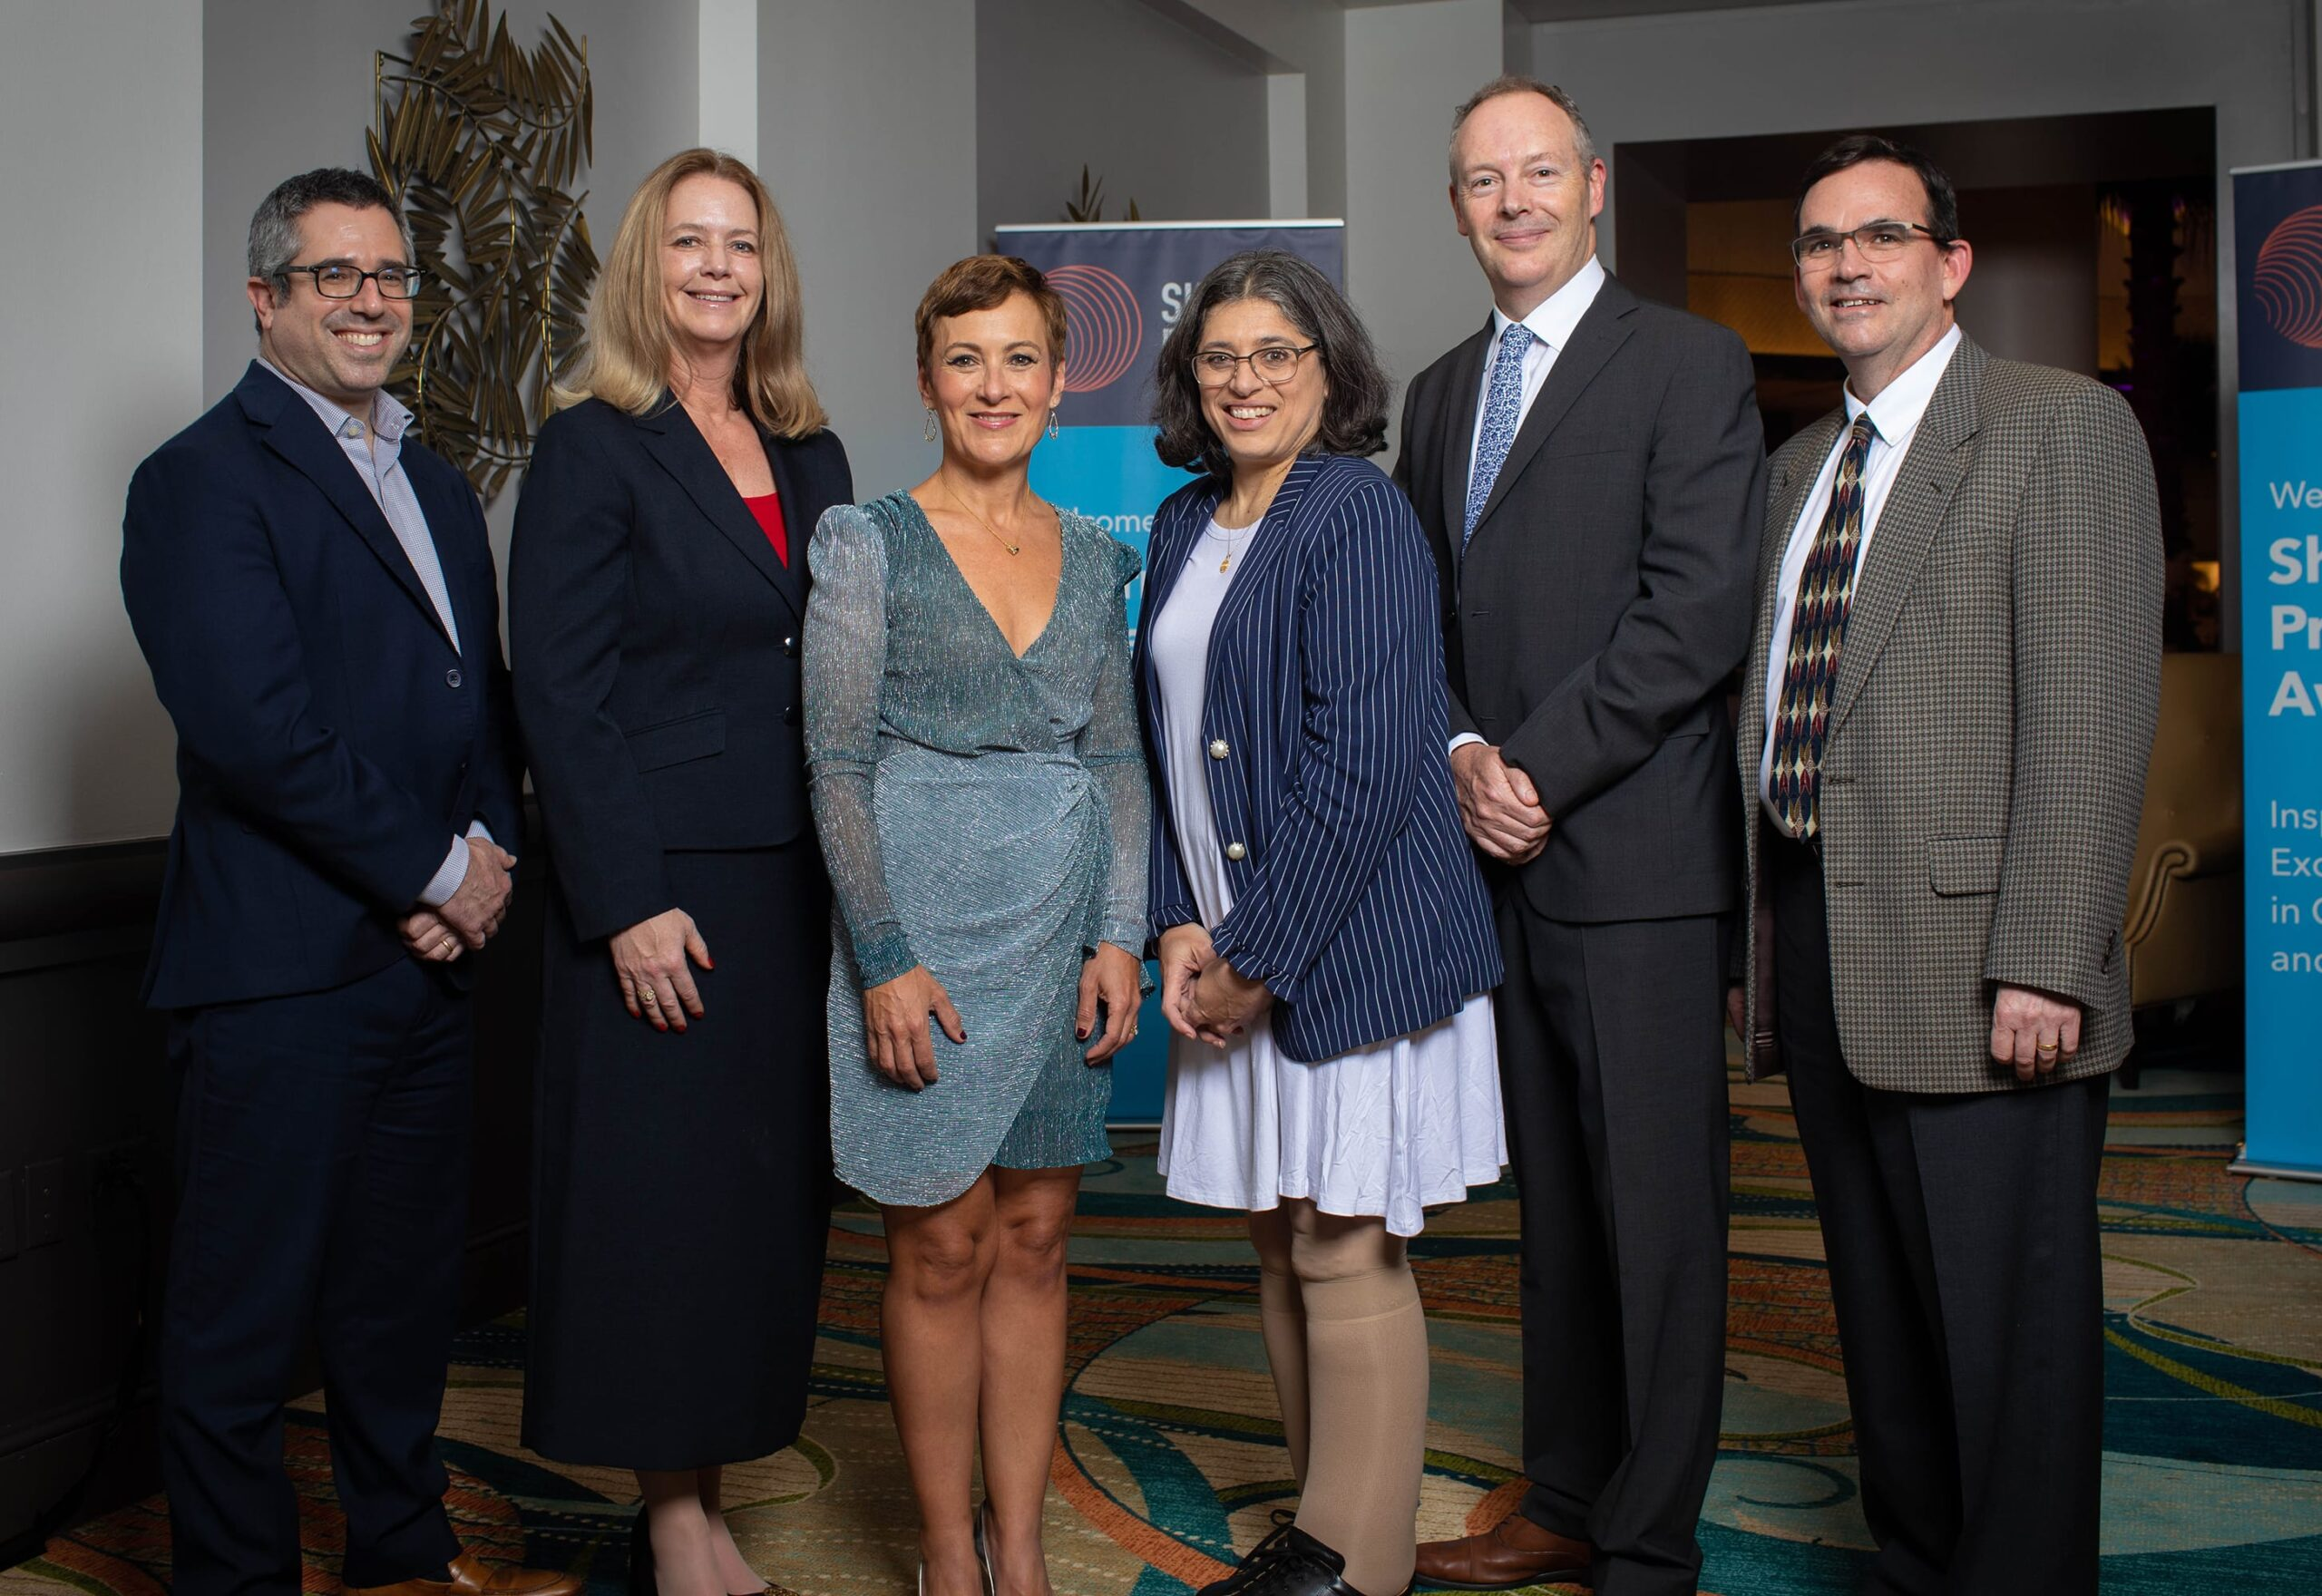 <p>2019 Selection Committee with 2019 Sherman Prize Recipient Dr. Maria Abreu</p>